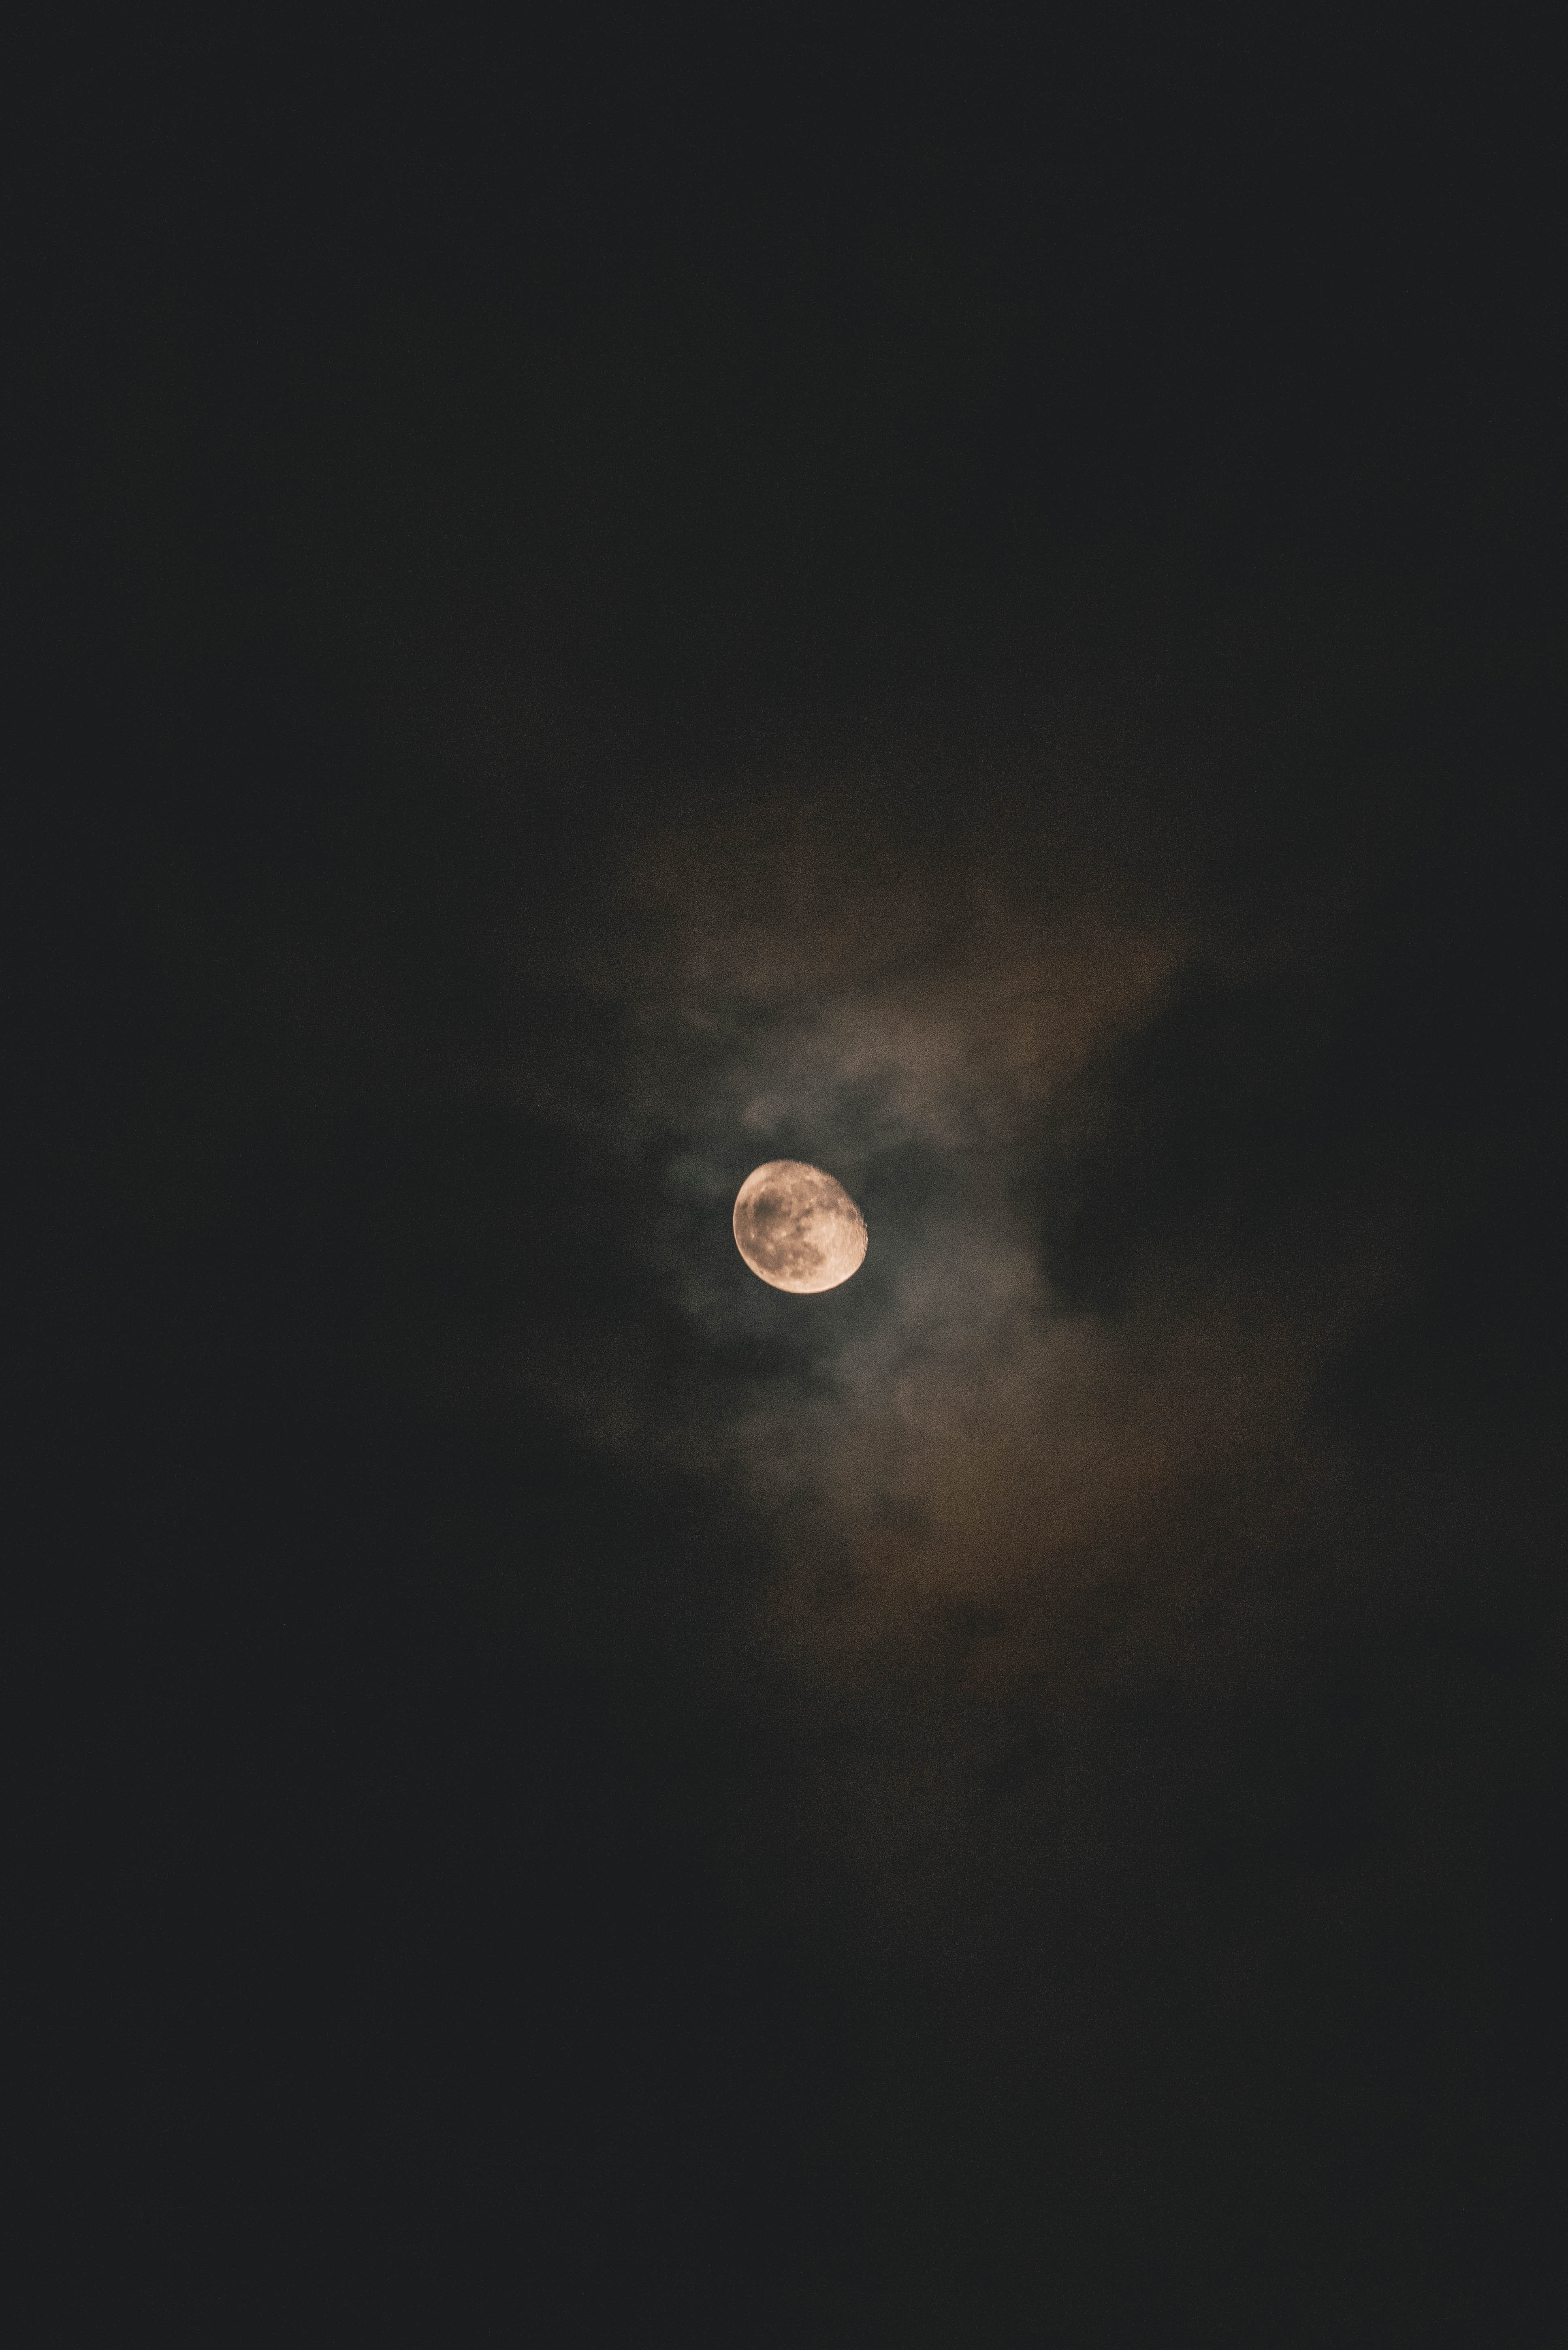 350 Night Pictures Hq Download Free Images On Unsplash